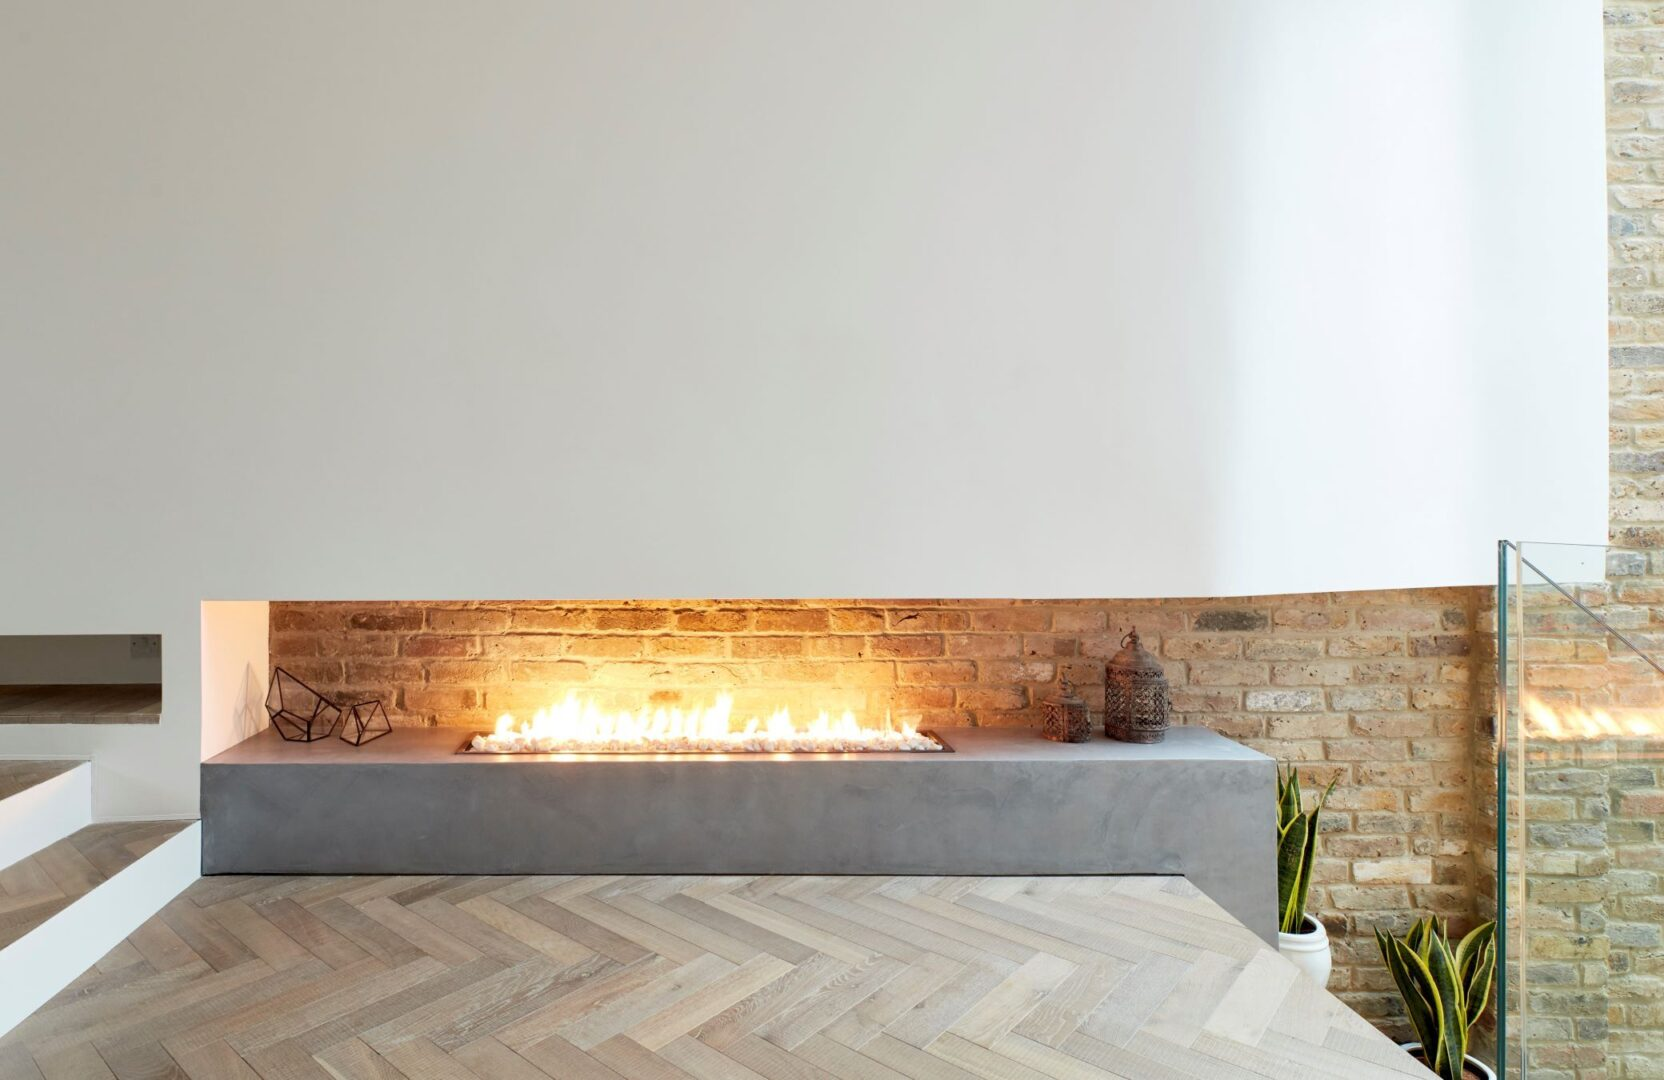 Tate bute herringbone floor with fire place by scenario architecture image by M Clayton3